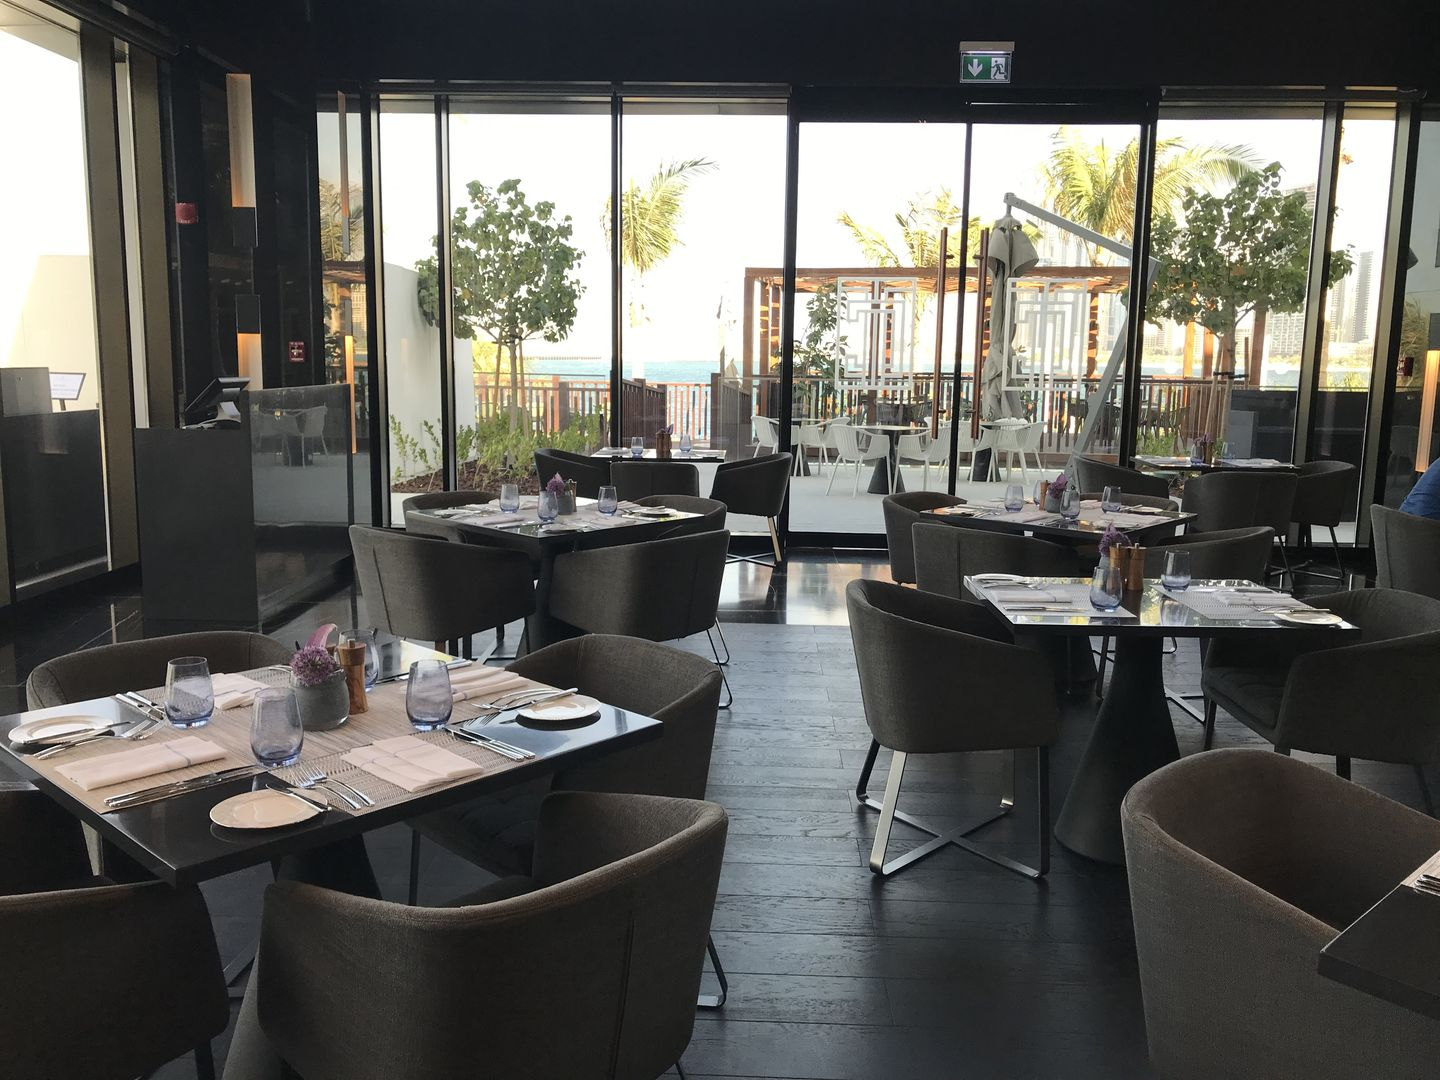 Cleo S Table Restaurants Bars In Dubai Marina Marsa Dubai Dubai